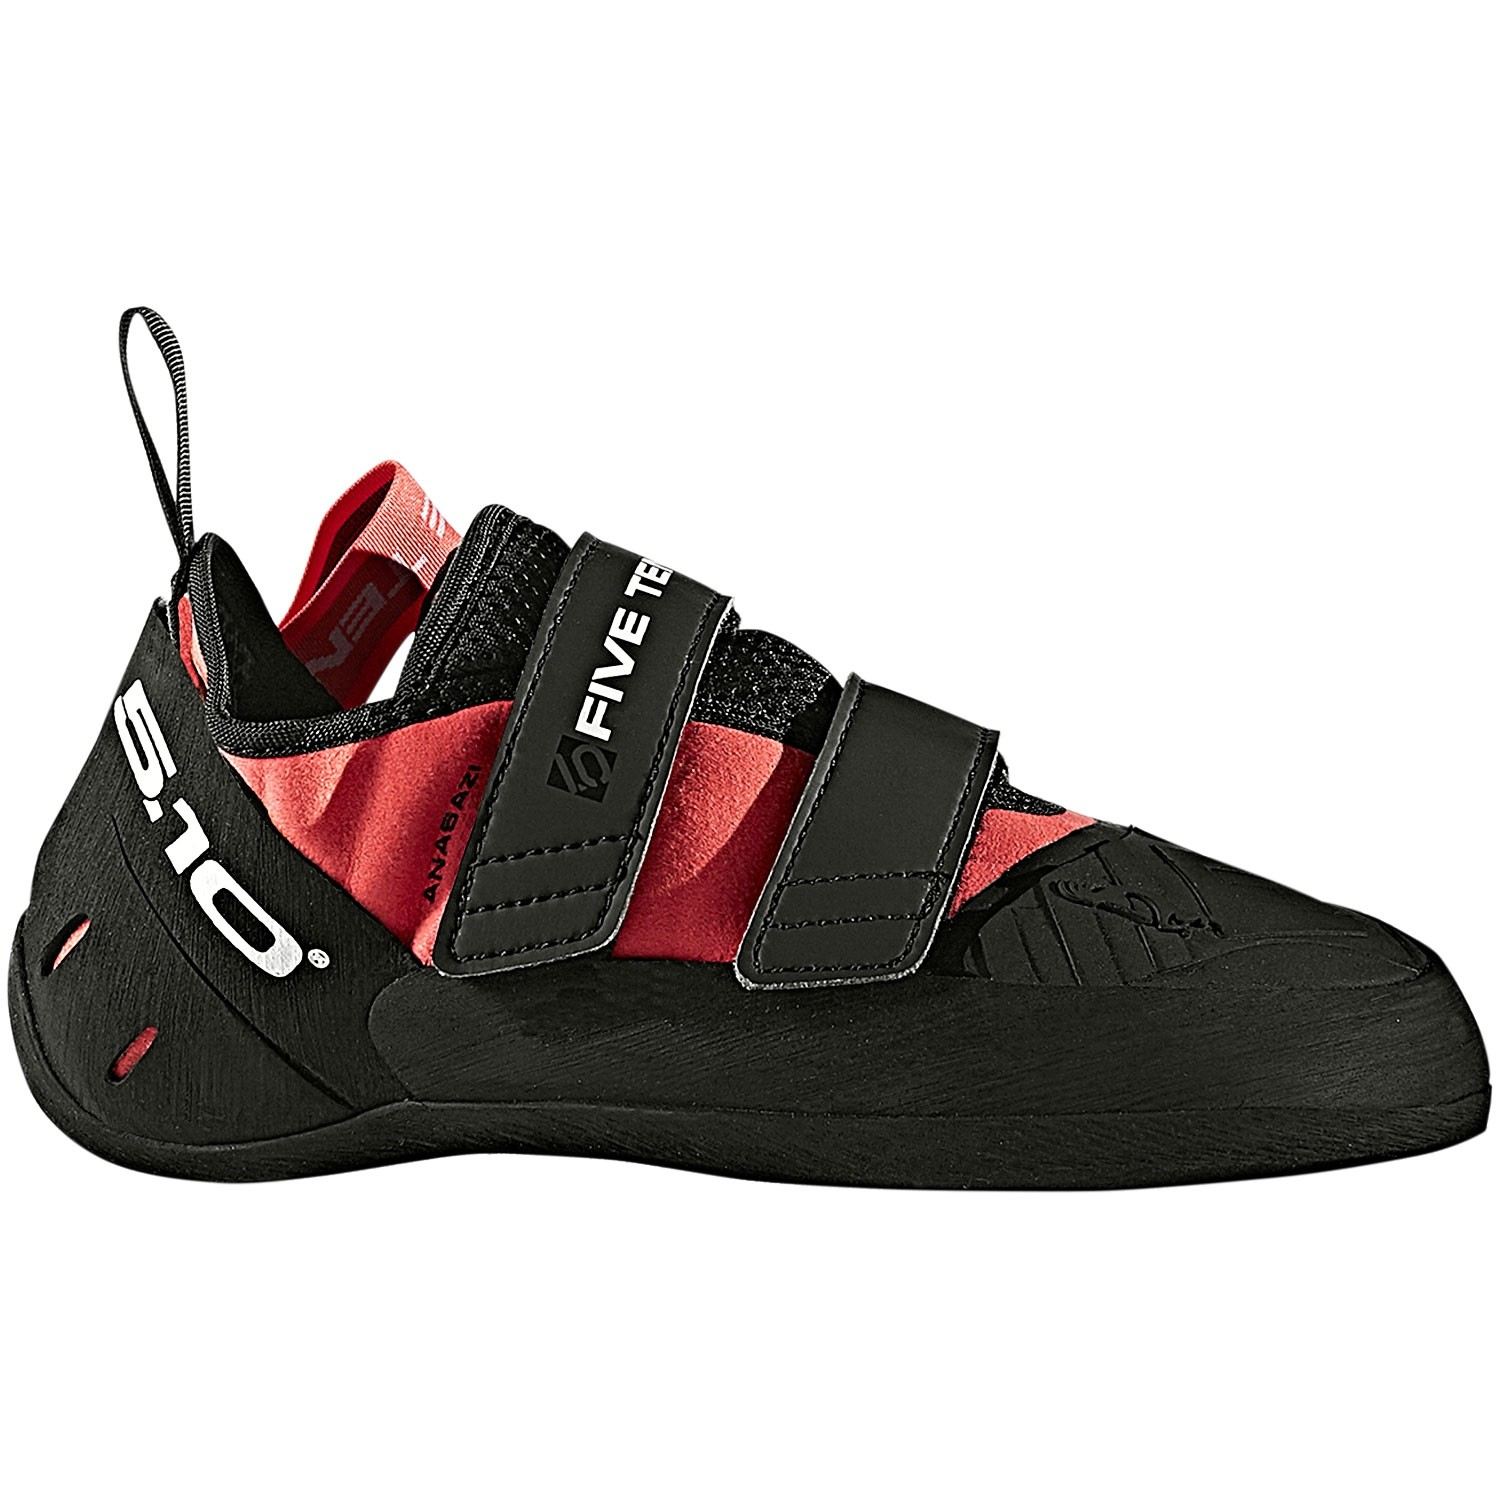 Five Ten Anasazi Pro Women's Climbing Shoes - Coral